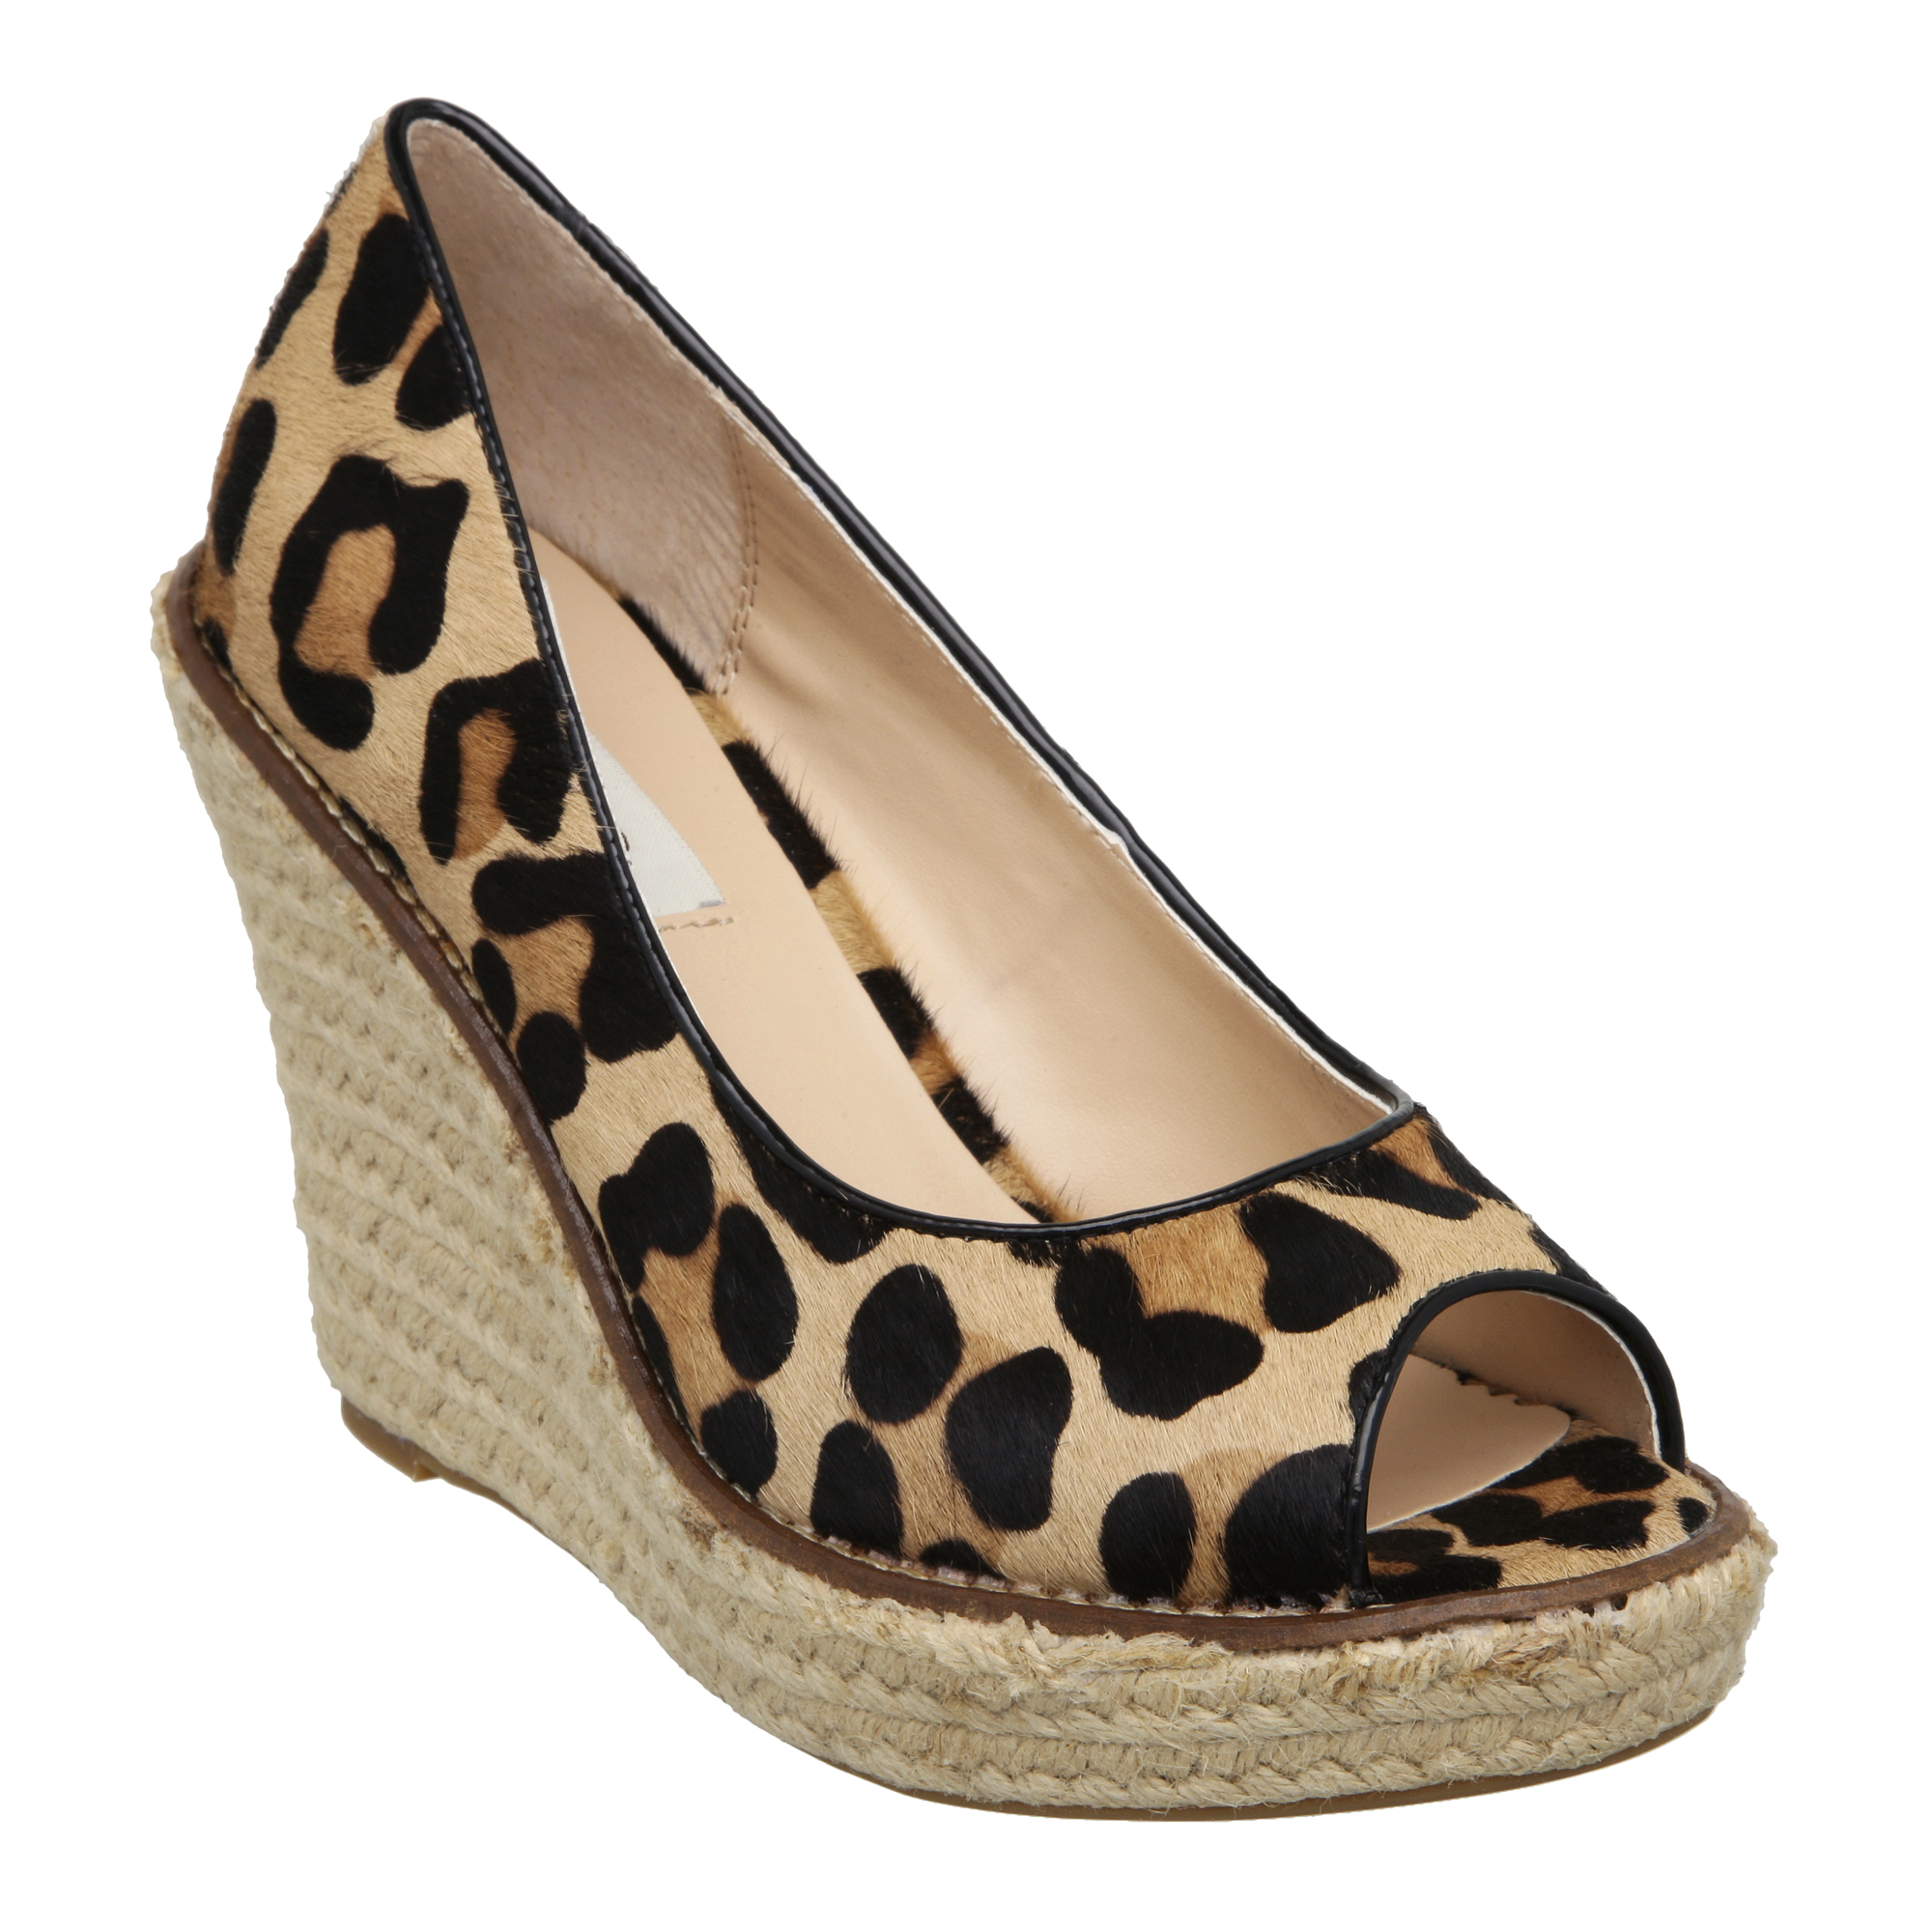 Steve Madden Women's Marryy Shoes (Black Fabric). Take your preppy look up a few inches in the Steve Madden Marryy modern espadrille wedges